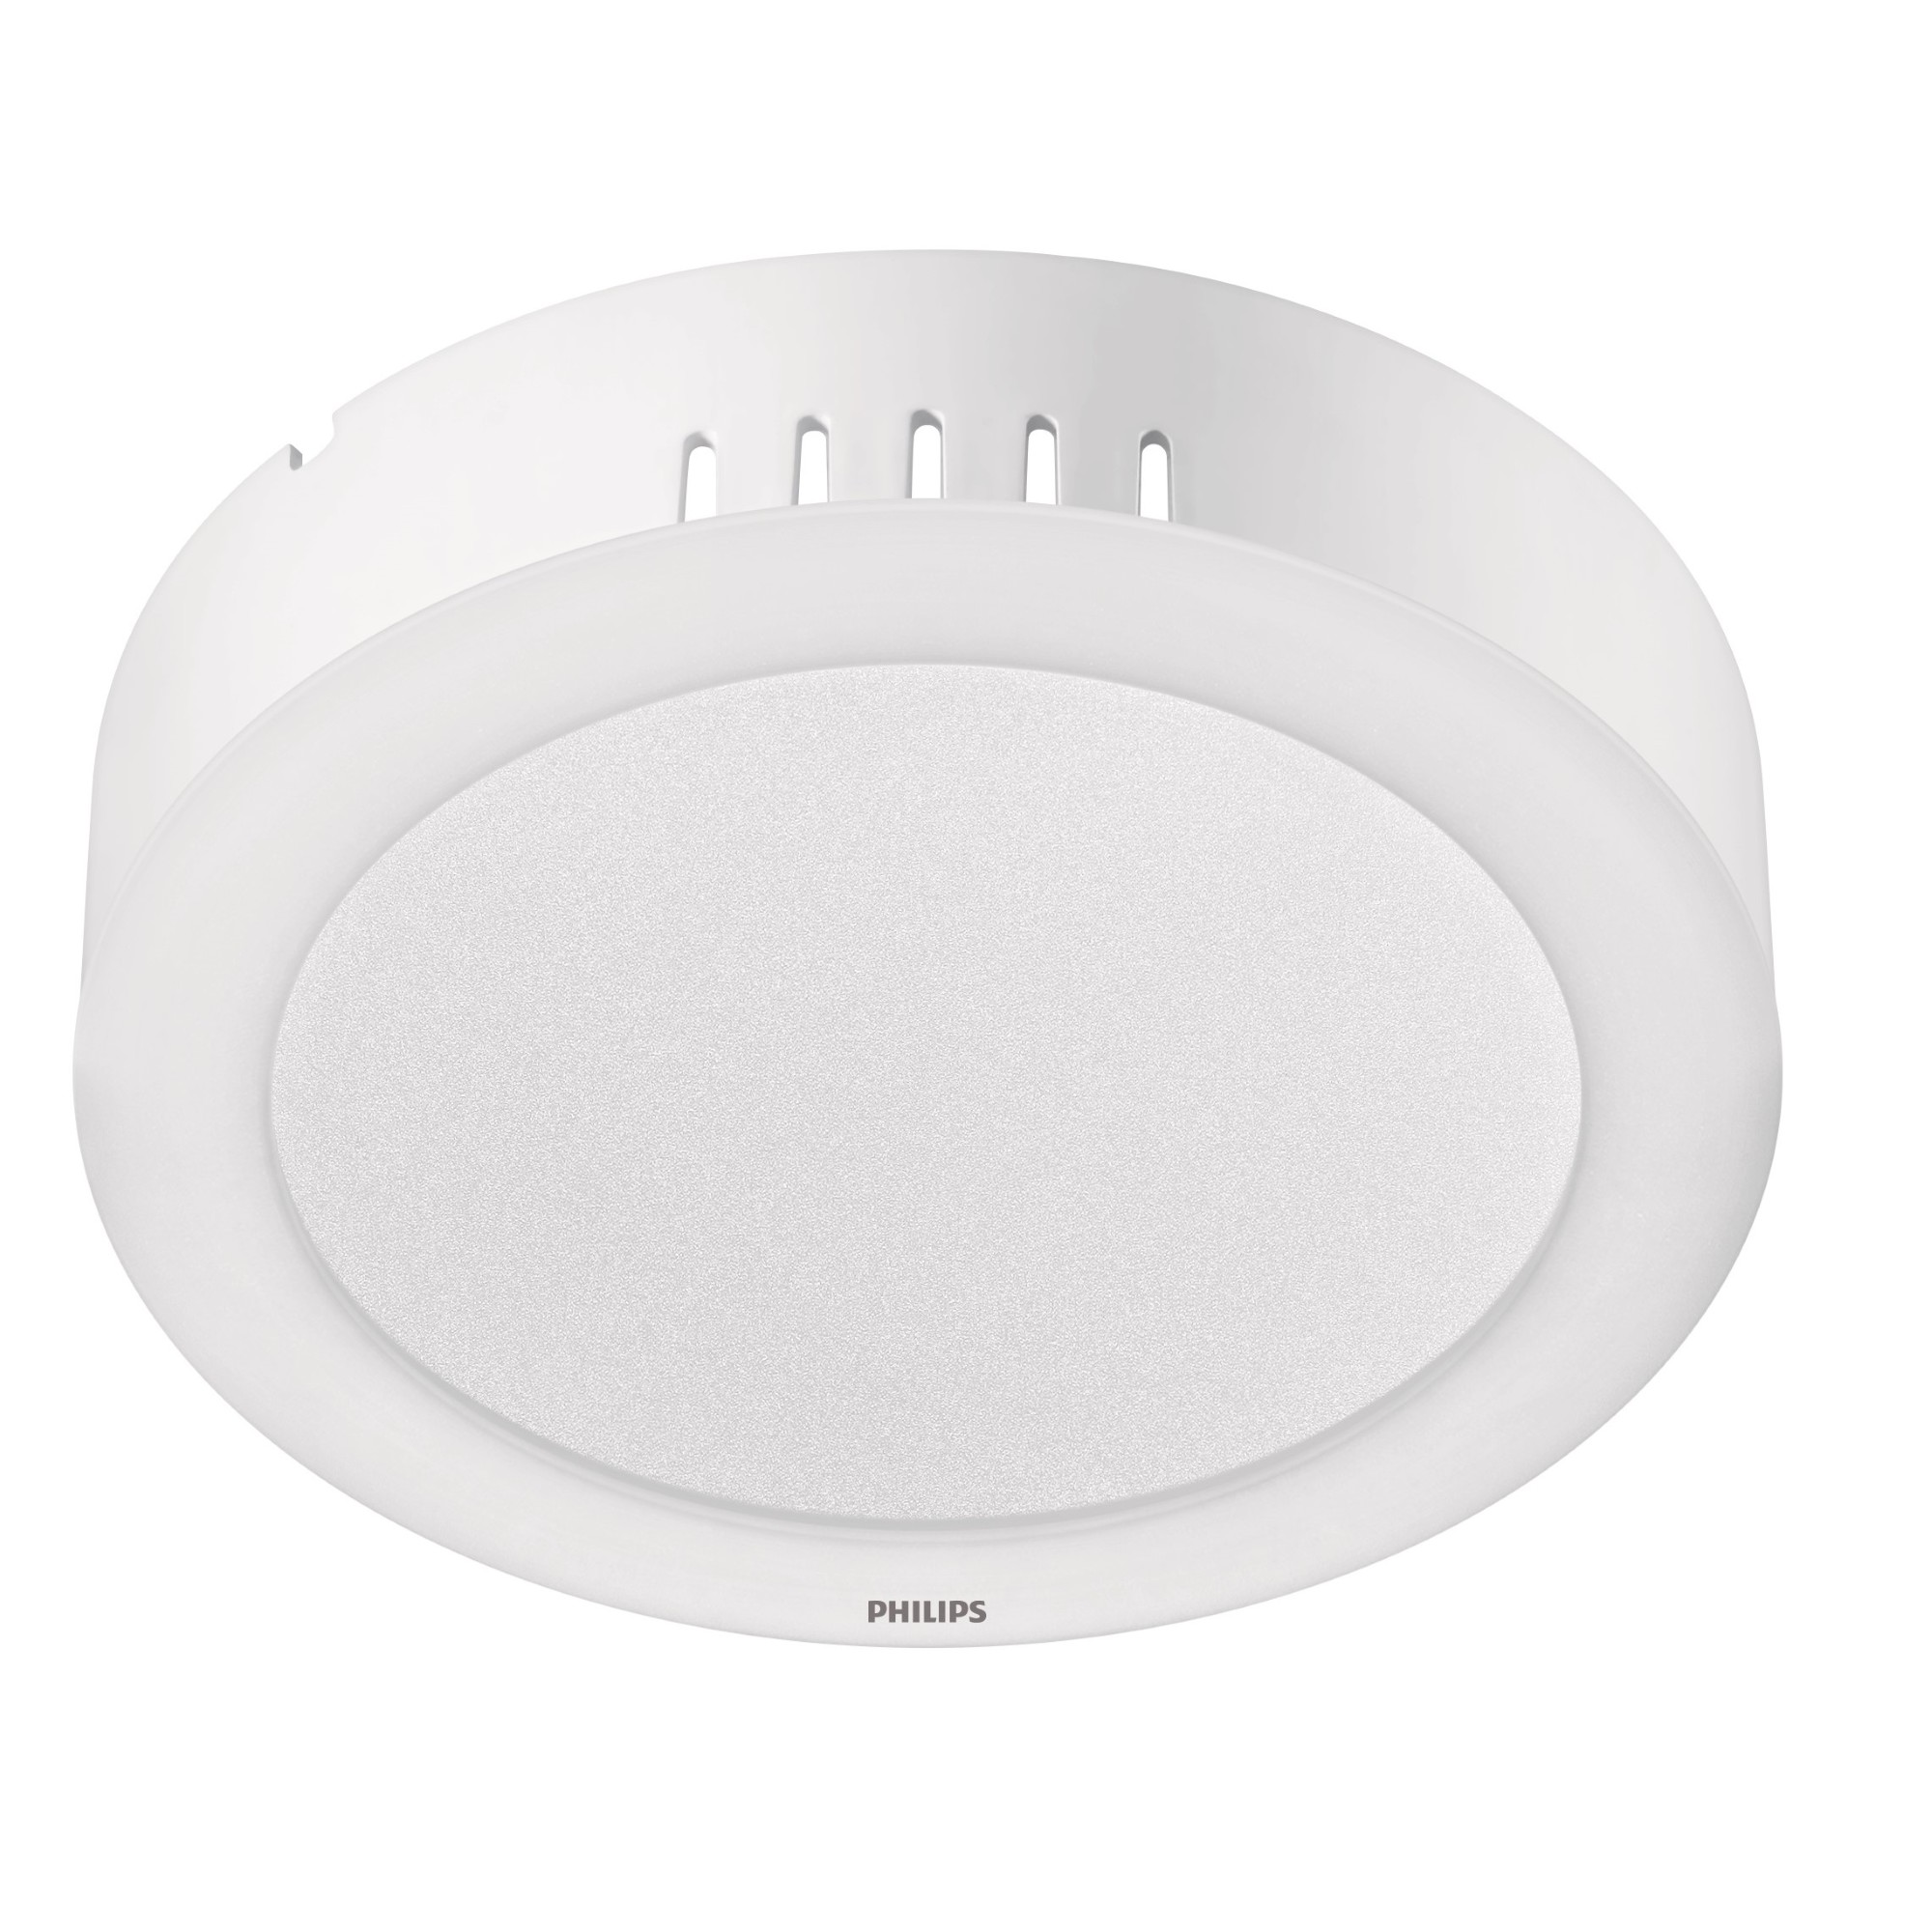 Painel LED Redondo 11W Luz Quente 900lm - Philips